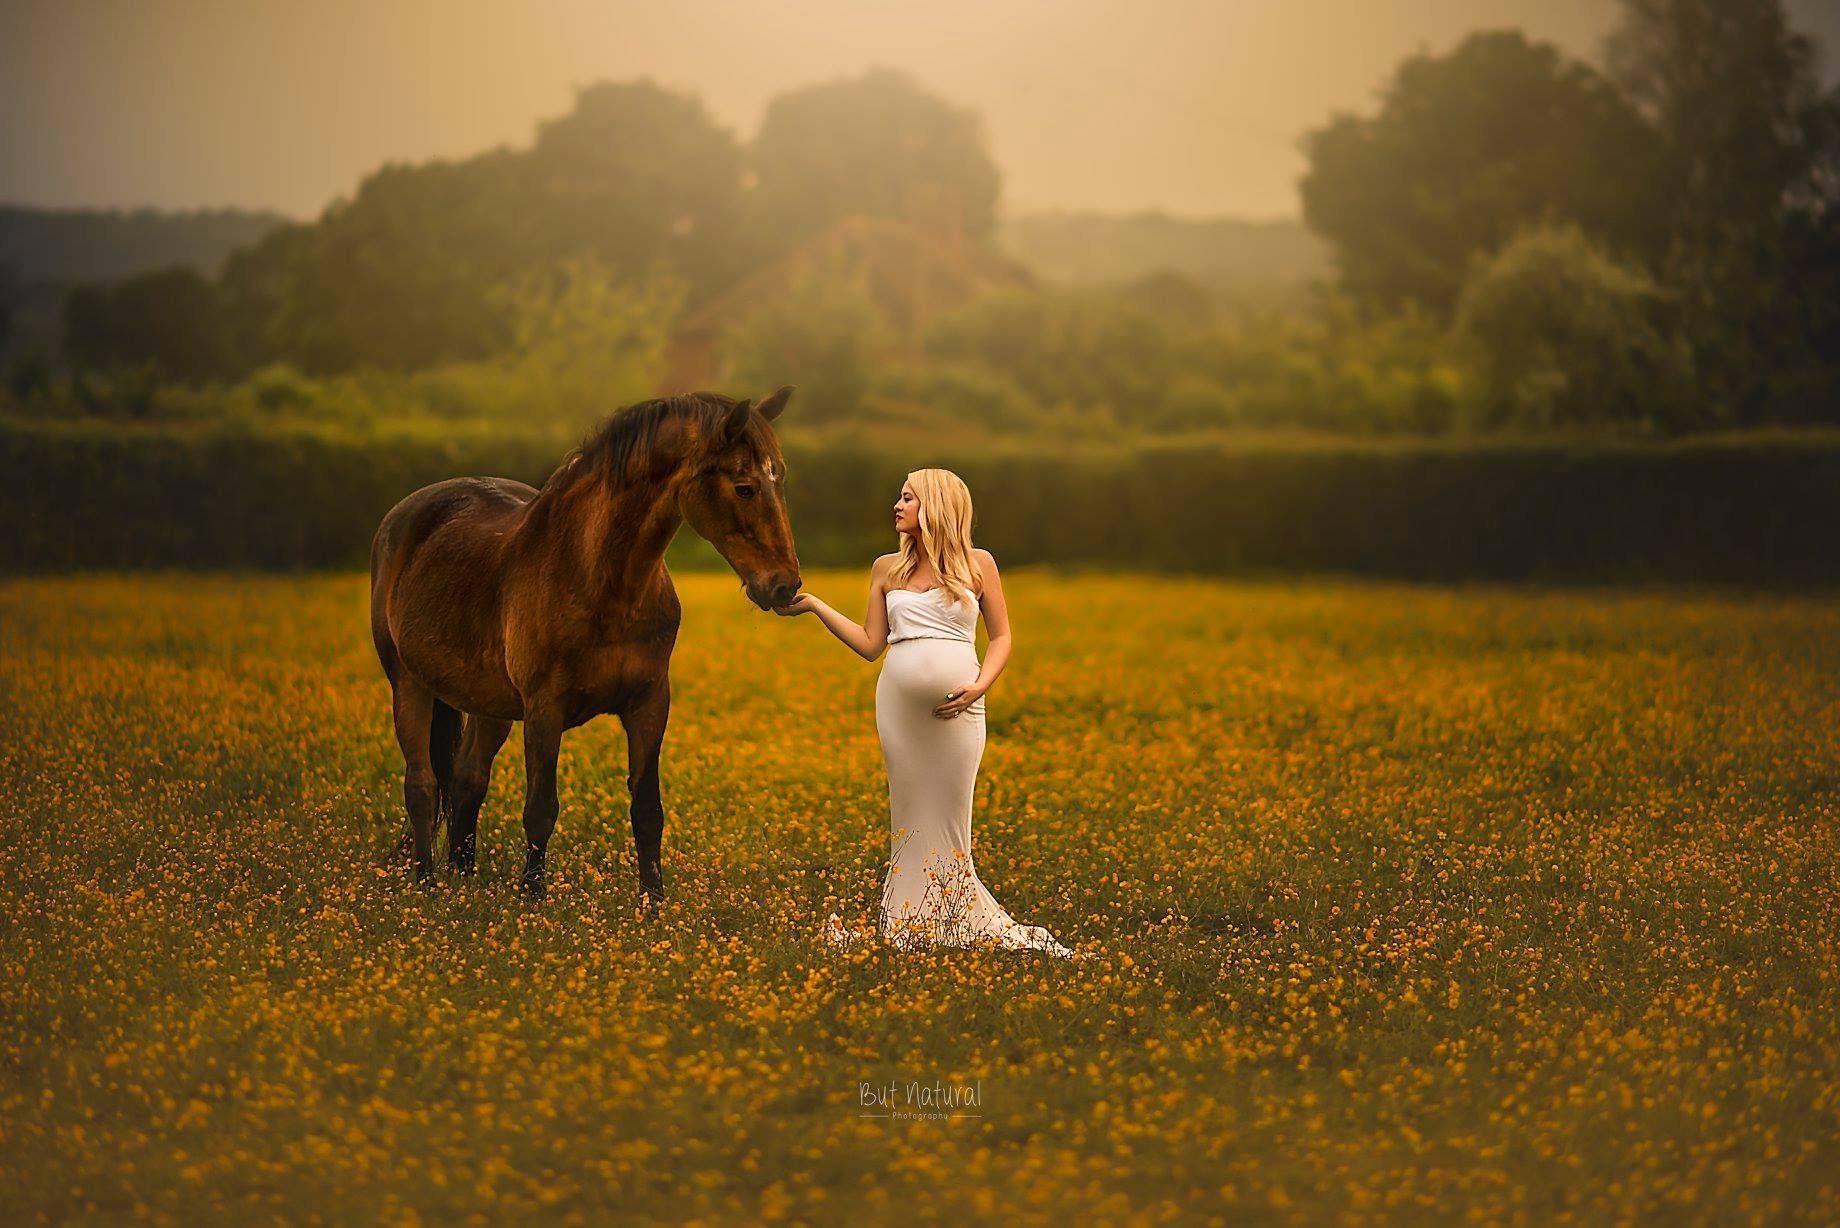 A pregnant lady standing next to the horse on a open field for maternity photoshoot   But Natural Photography